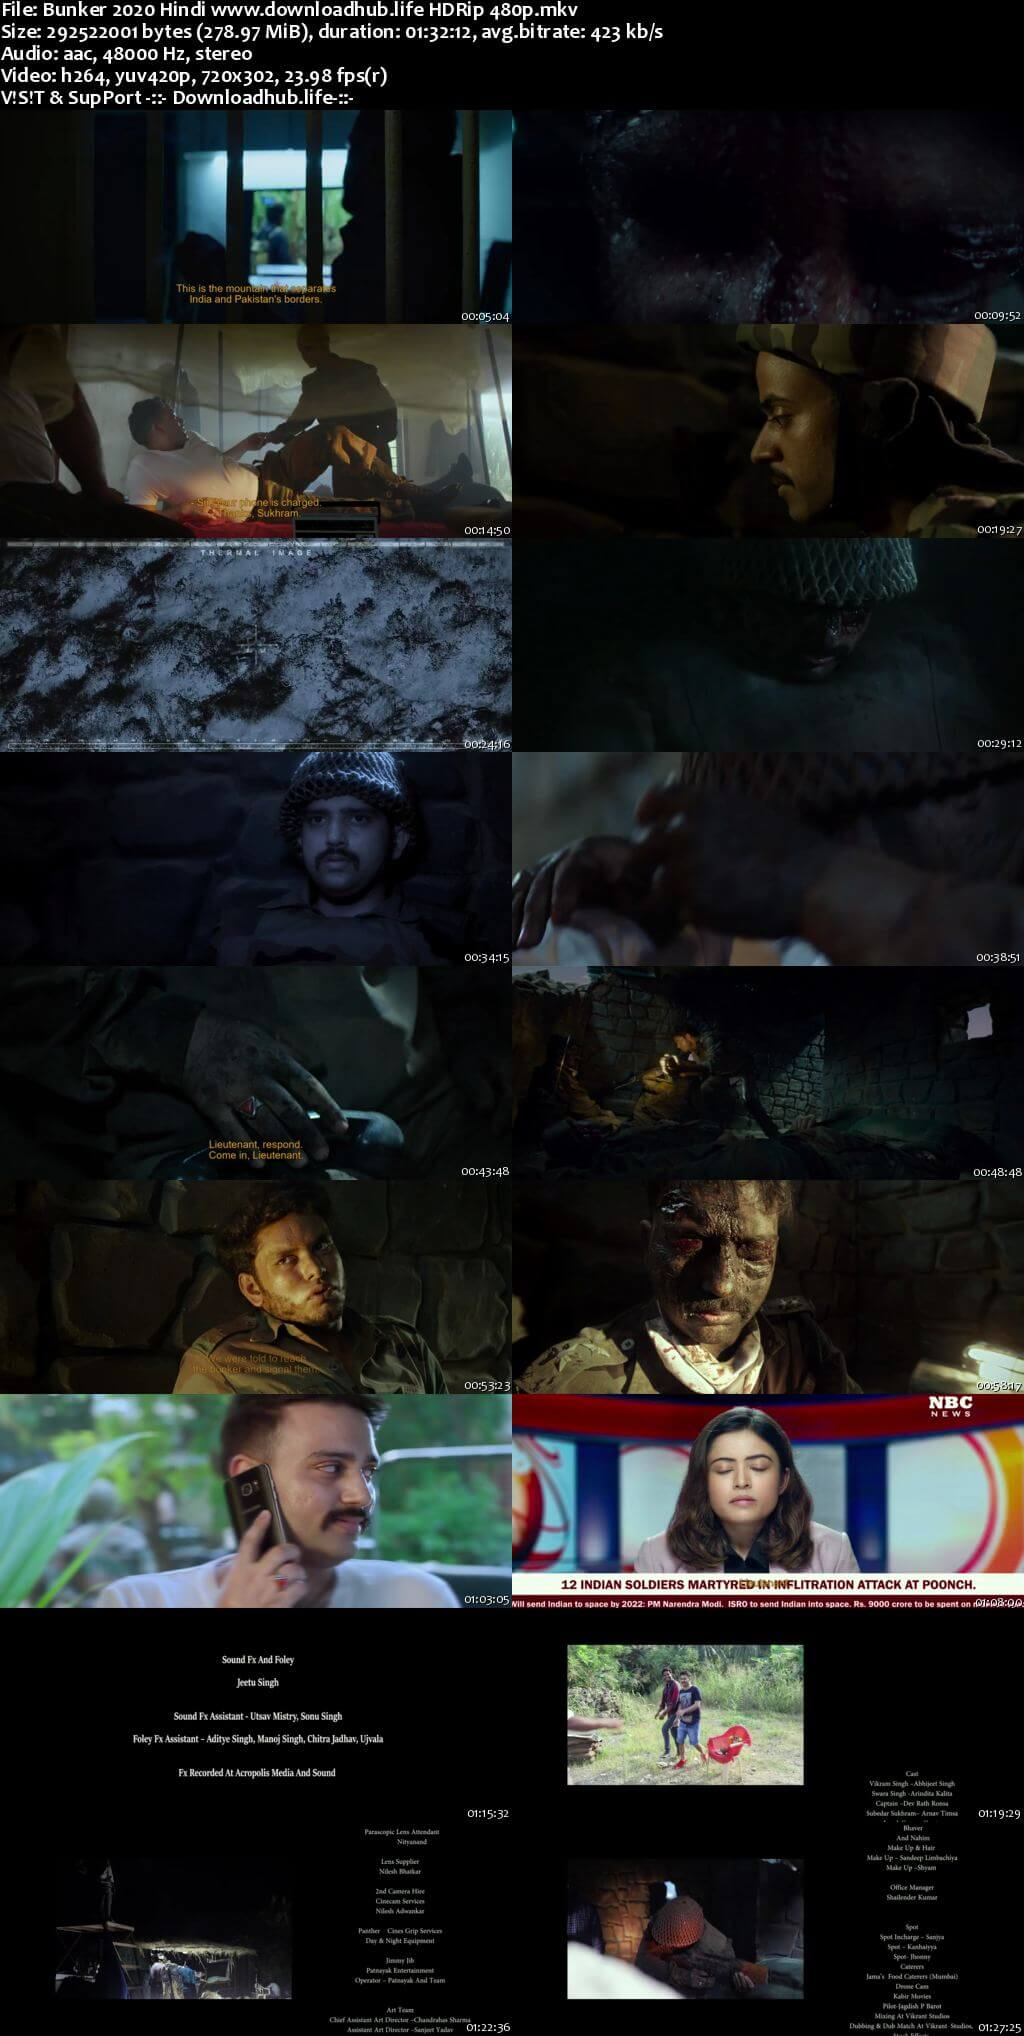 Bunker 2020 Hindi 280MB HDRip 480p